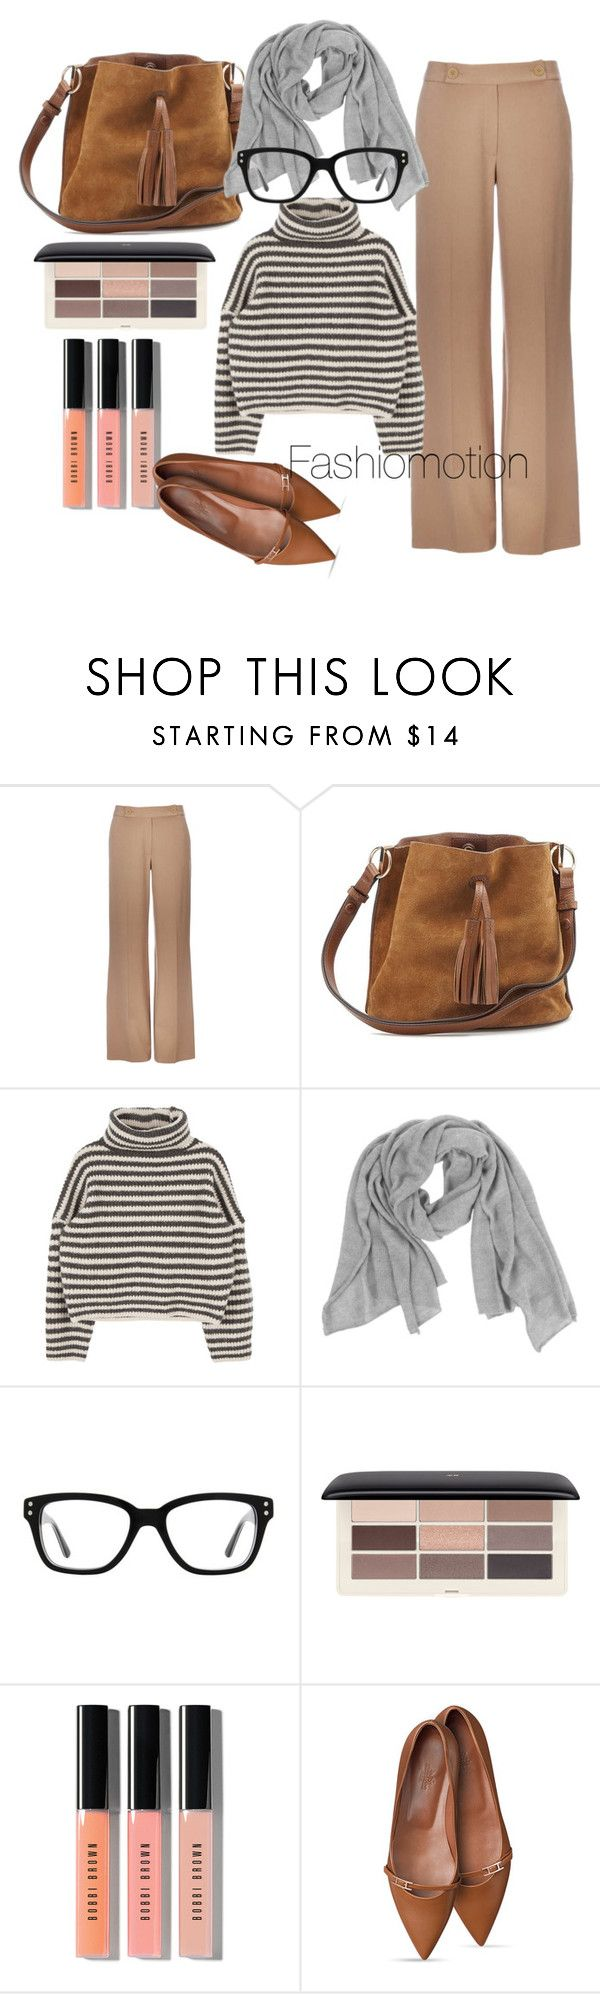 """""""For hijabers in campus"""" by fashiomotion ❤ liked on Polyvore featuring Wallis, Samantha Holmes, Converse, H&M and Bobbi Brown Cosmetics"""